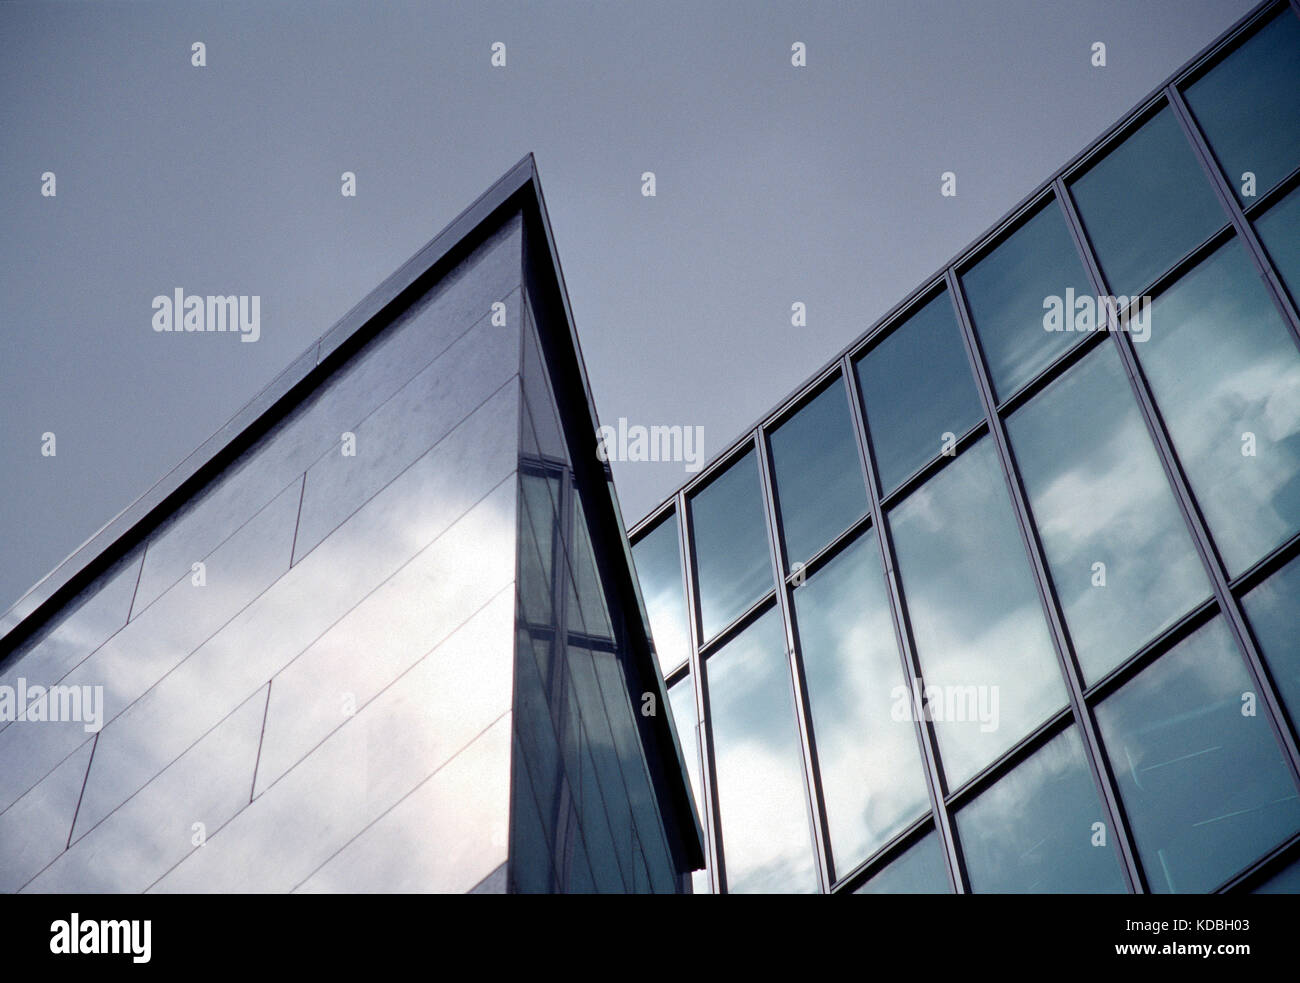 Architecture. Low angle viewpoint of glass façade  section of modern commercial building. - Stock Image